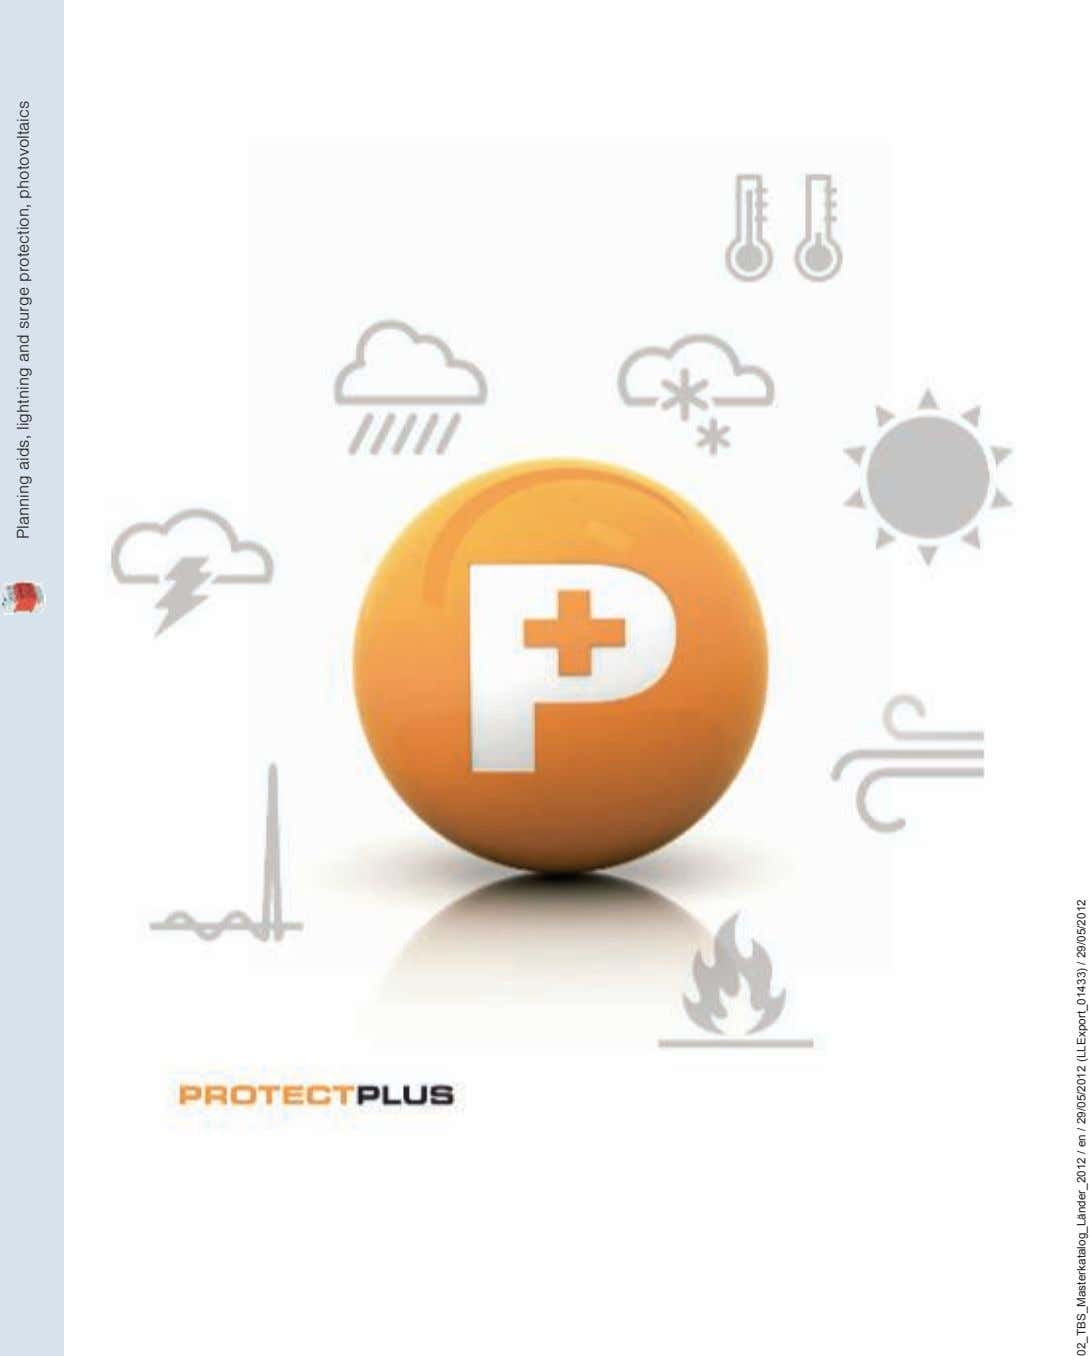 Planning aids, lightning and surge protection, photovoltaics 02_TBS_Masterkatalog_Länder_2012 / en / 29/05/2012